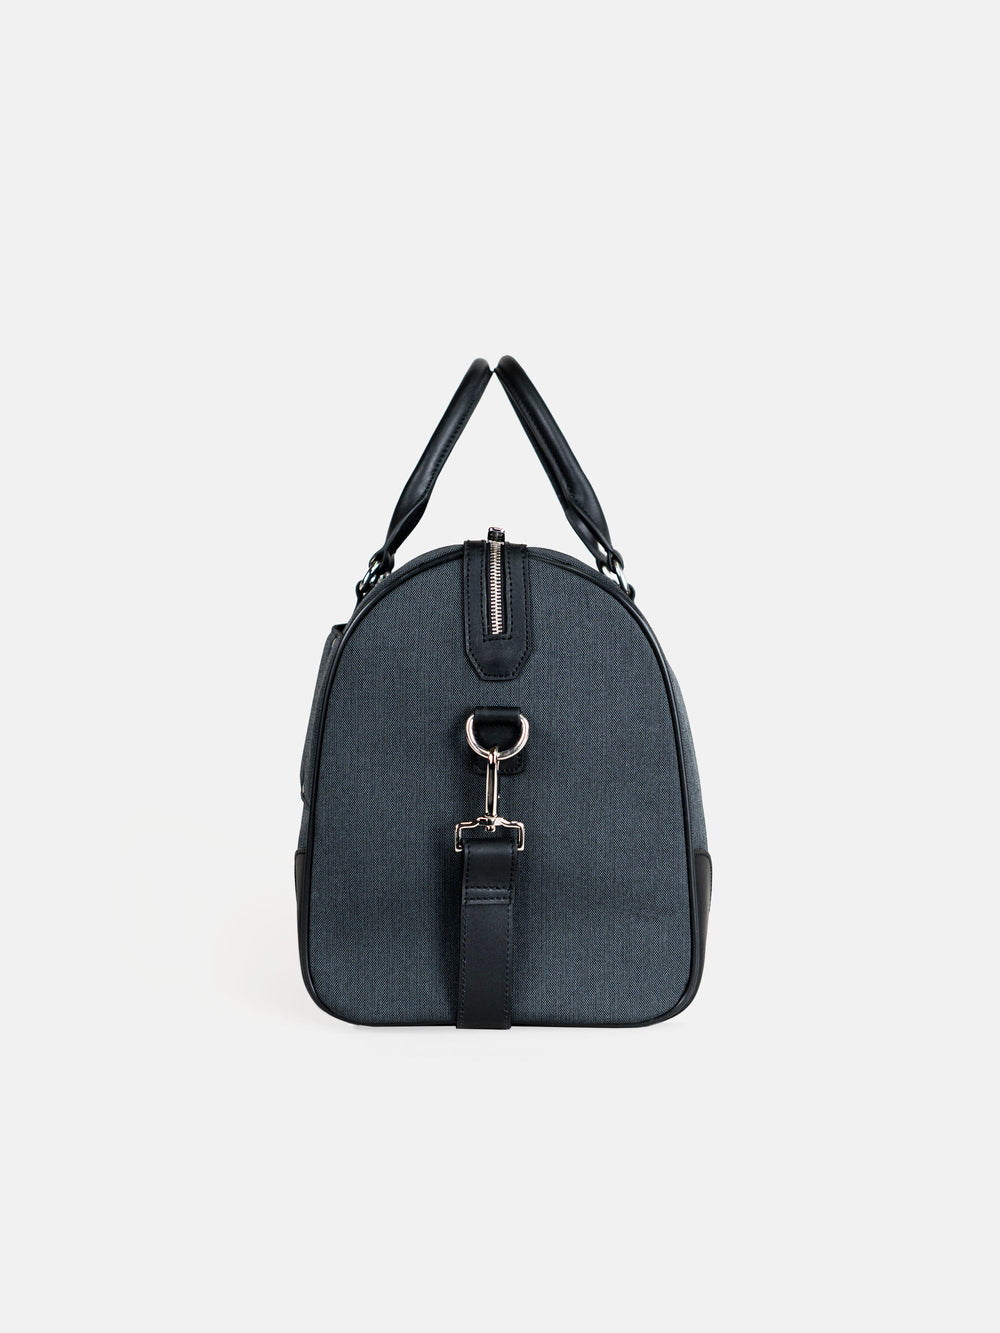 cp34 travel duffel bag in anthracite nylon